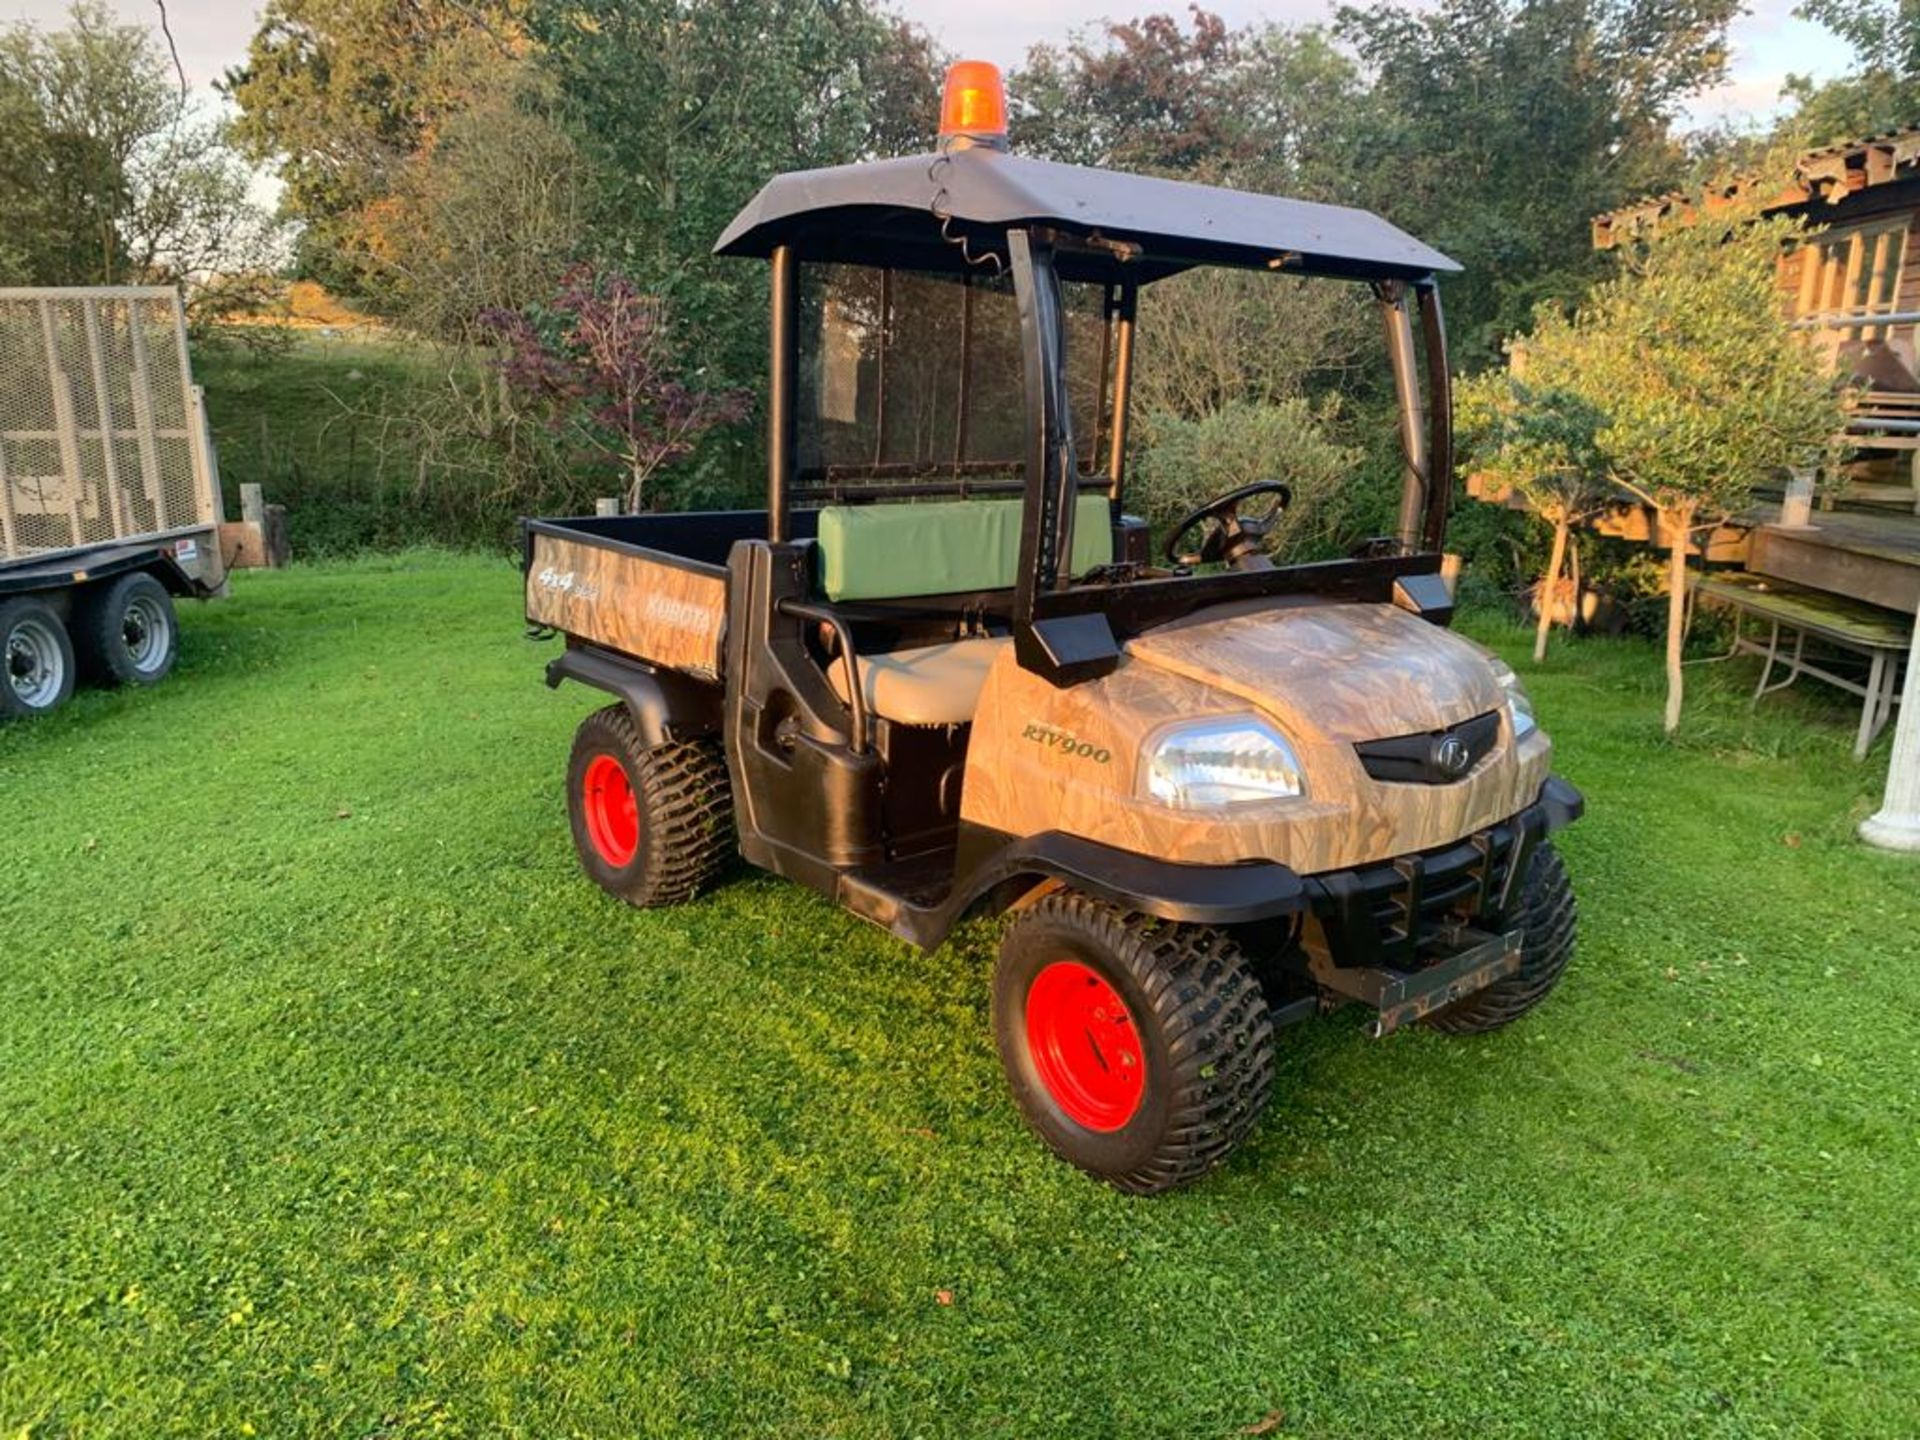 KUBOTA 4X4 DIESEL HYDRAULIC TIPPER BUGGY, RUNS, WORKS AND TIPS *PLUS VAT* - Image 3 of 22